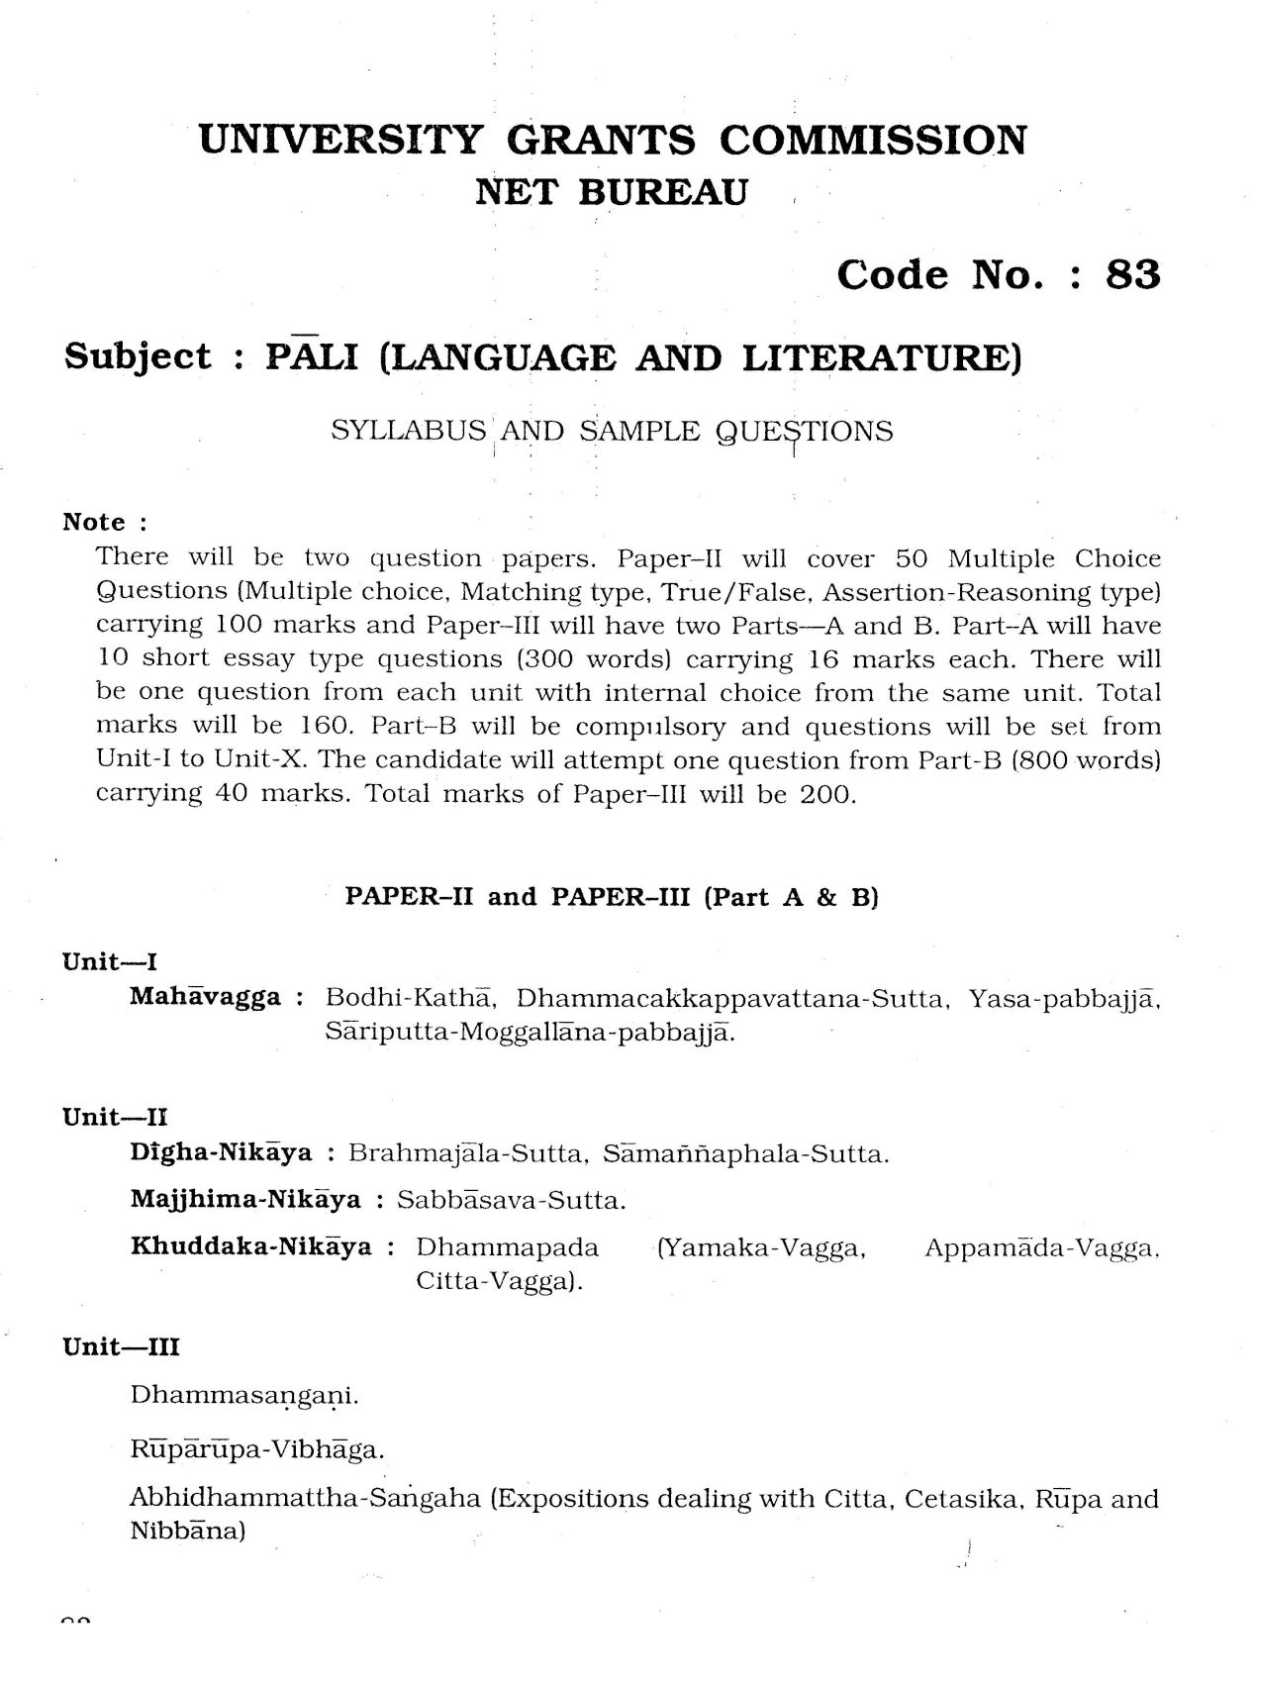 014 Ugc National Eligibility Test Pali Syllabus Teen Pregnancy Essay Amazing Teenage Pdf Body Introduction In The Philippines Full